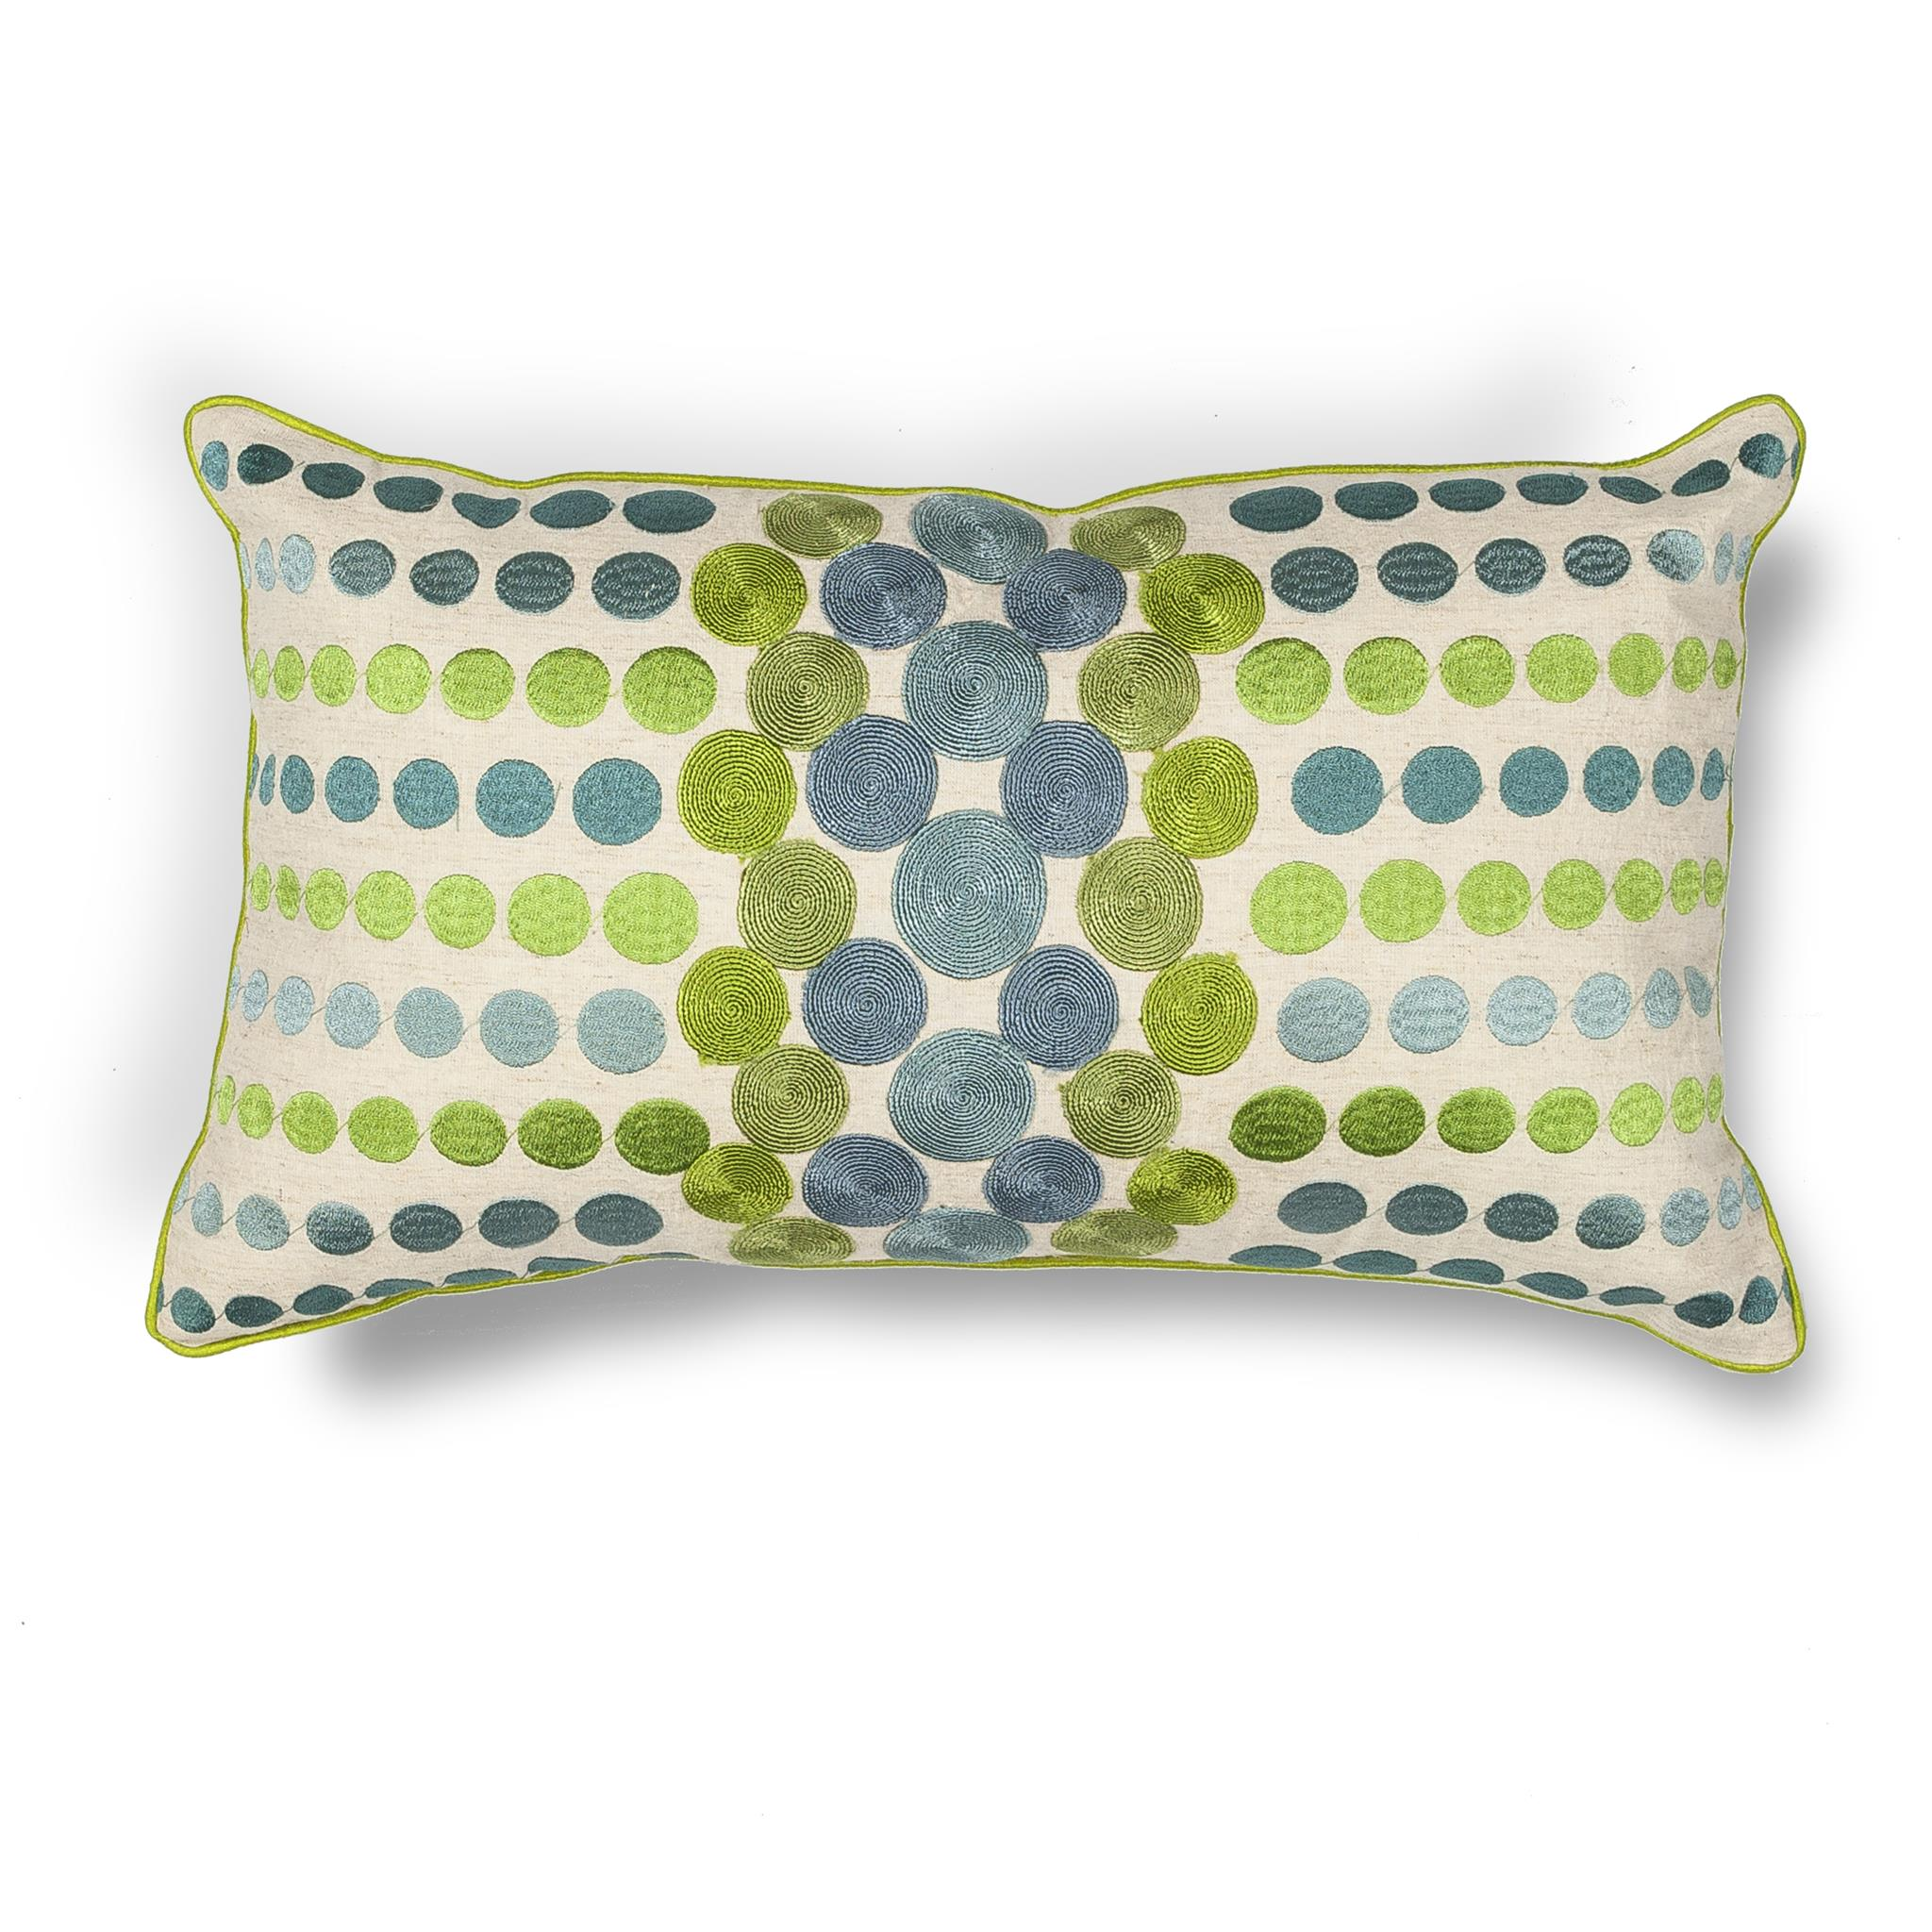 L220 Donny Osmond Home Blue-Green Circles Pillow